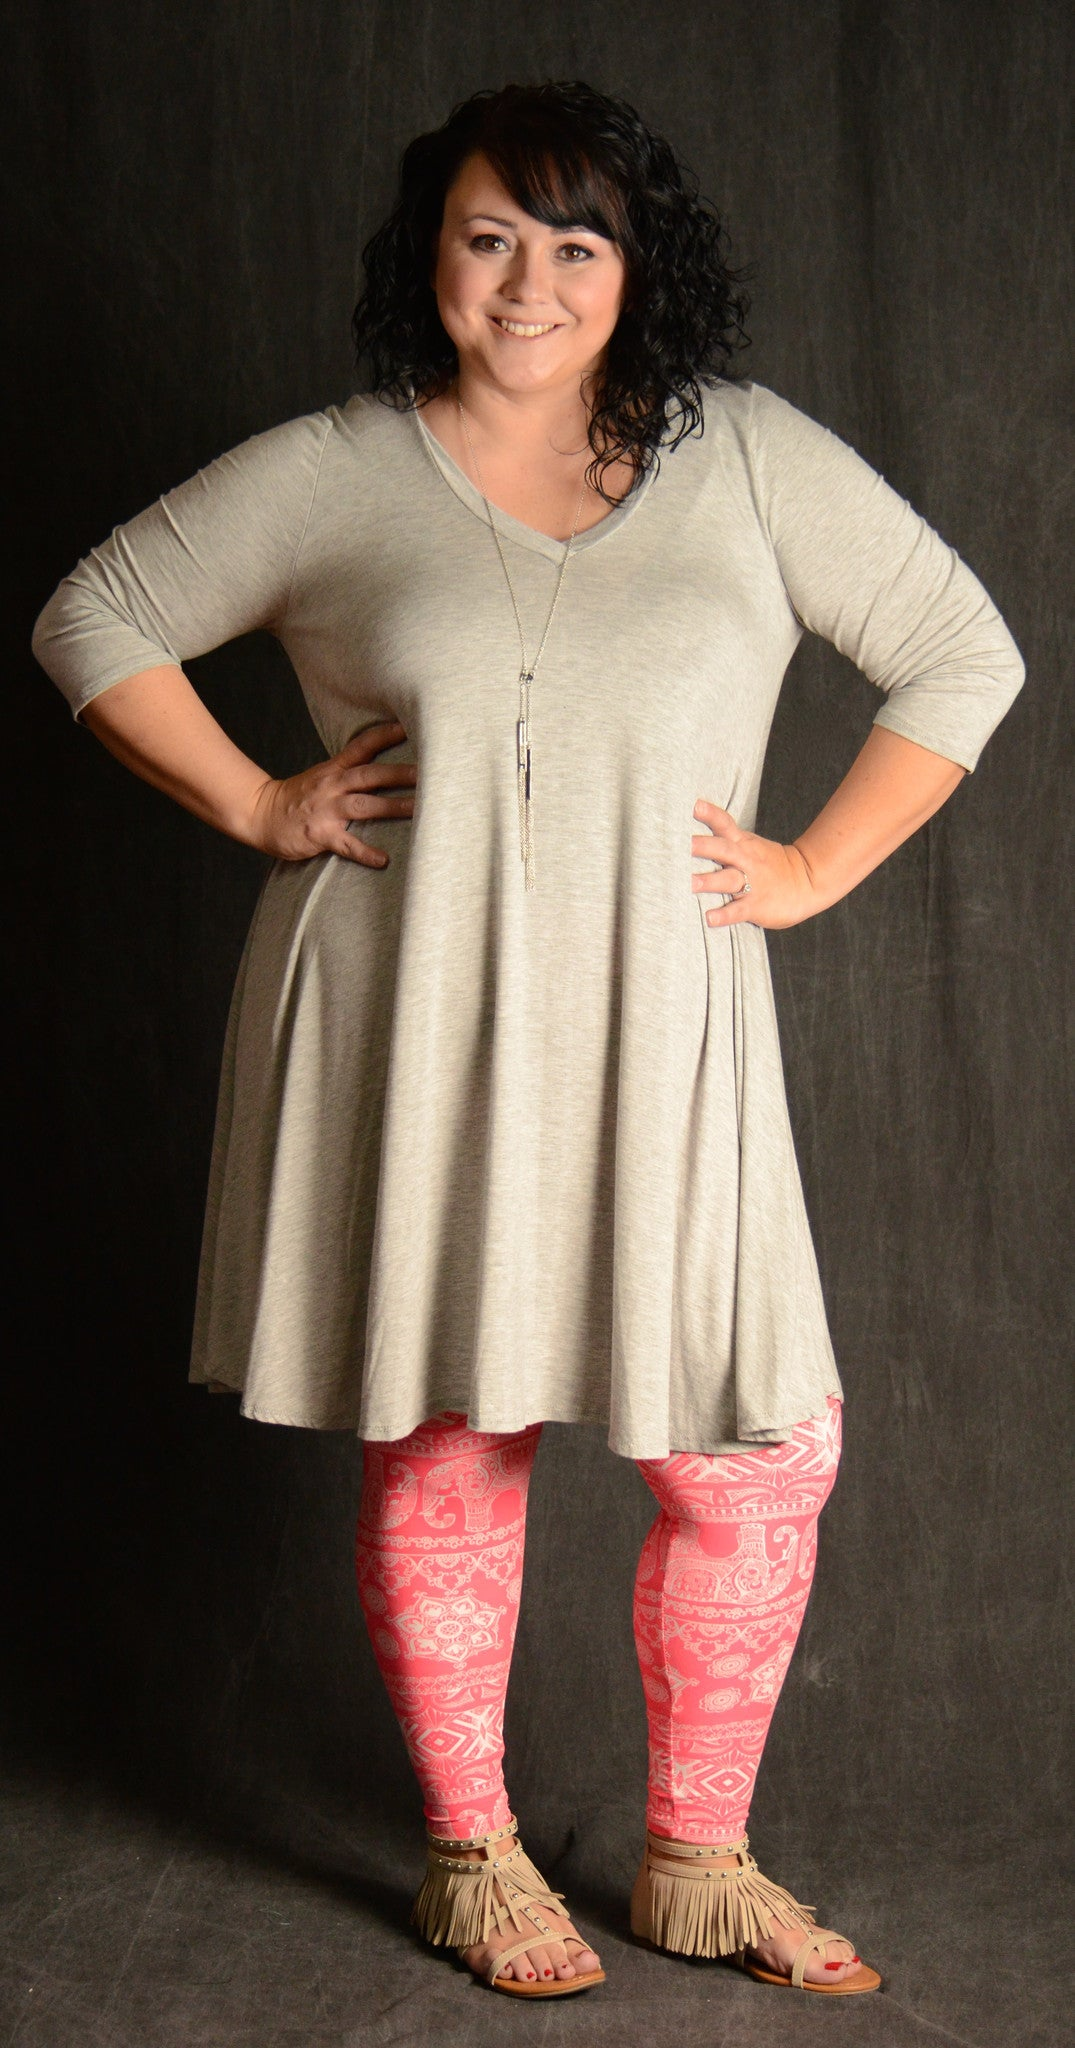 Heather Grey Loose Fit Dress - www.mycurvystore.com - Curvy Boutique - Plus Size